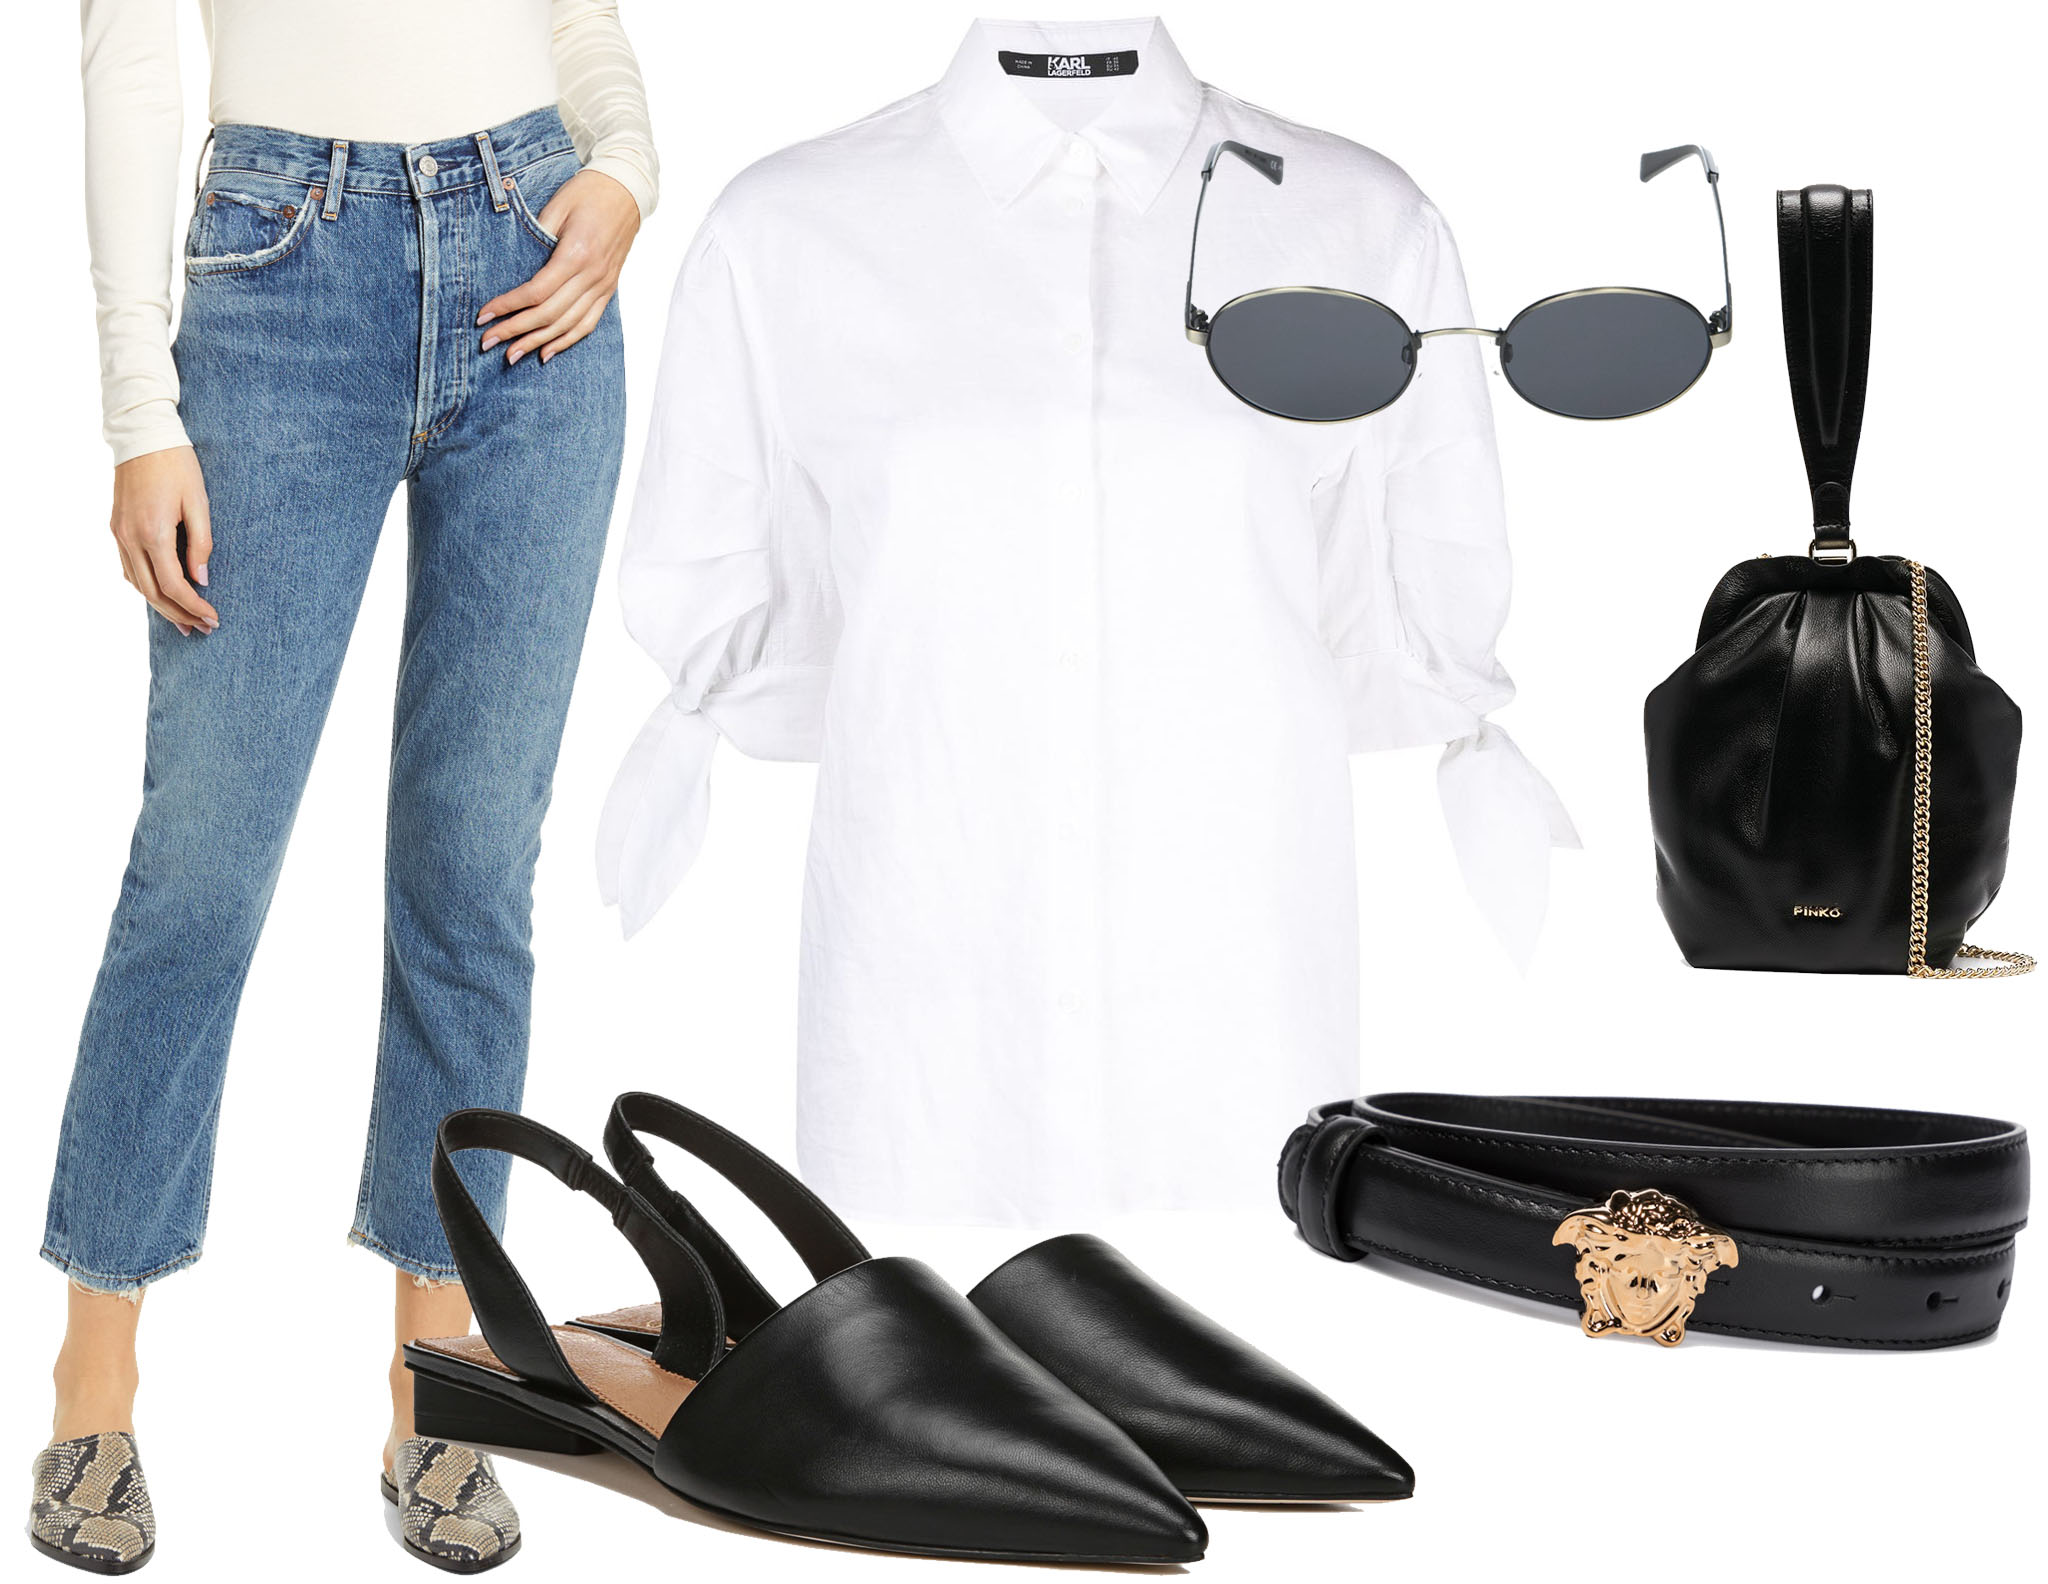 Agolde Riley high-waist crop straight-leg jeans, Karl Lagerfeld bow puff-sleeve shirt, Sarto by Franco Sarto pointed-toe slingback flats, VonZipper Scenario sunglasses, Pinko framed leather pouch bag, Versace Medusa leather belt